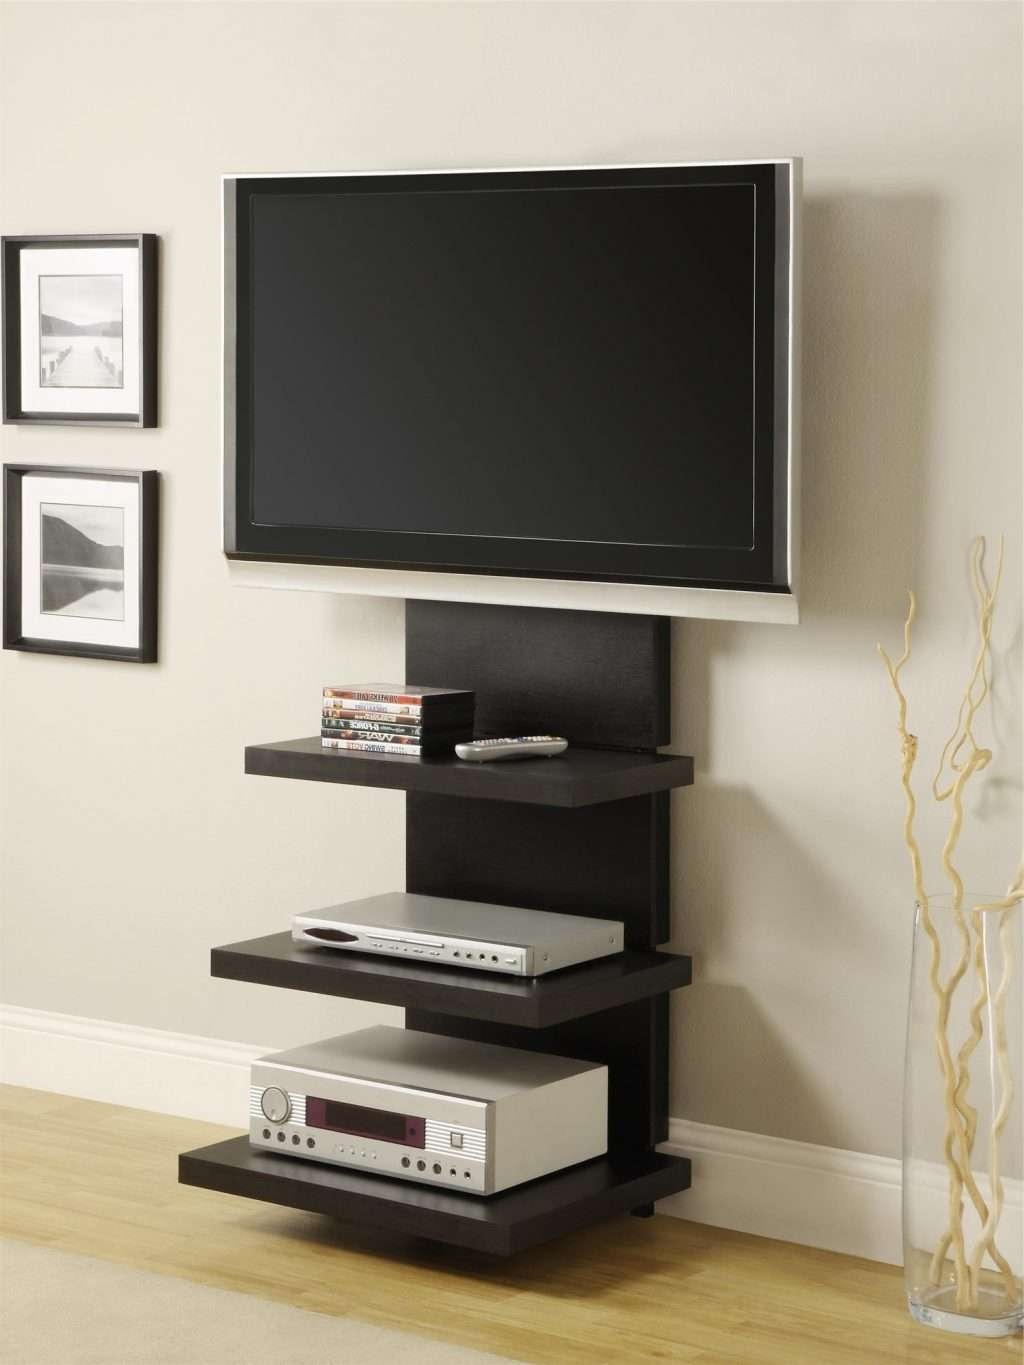 Living ~ Long Low Tv Stand Tv Stands For 55 Inch Tv Wood Led Tv Inside Long Low Tv Stands (View 7 of 15)